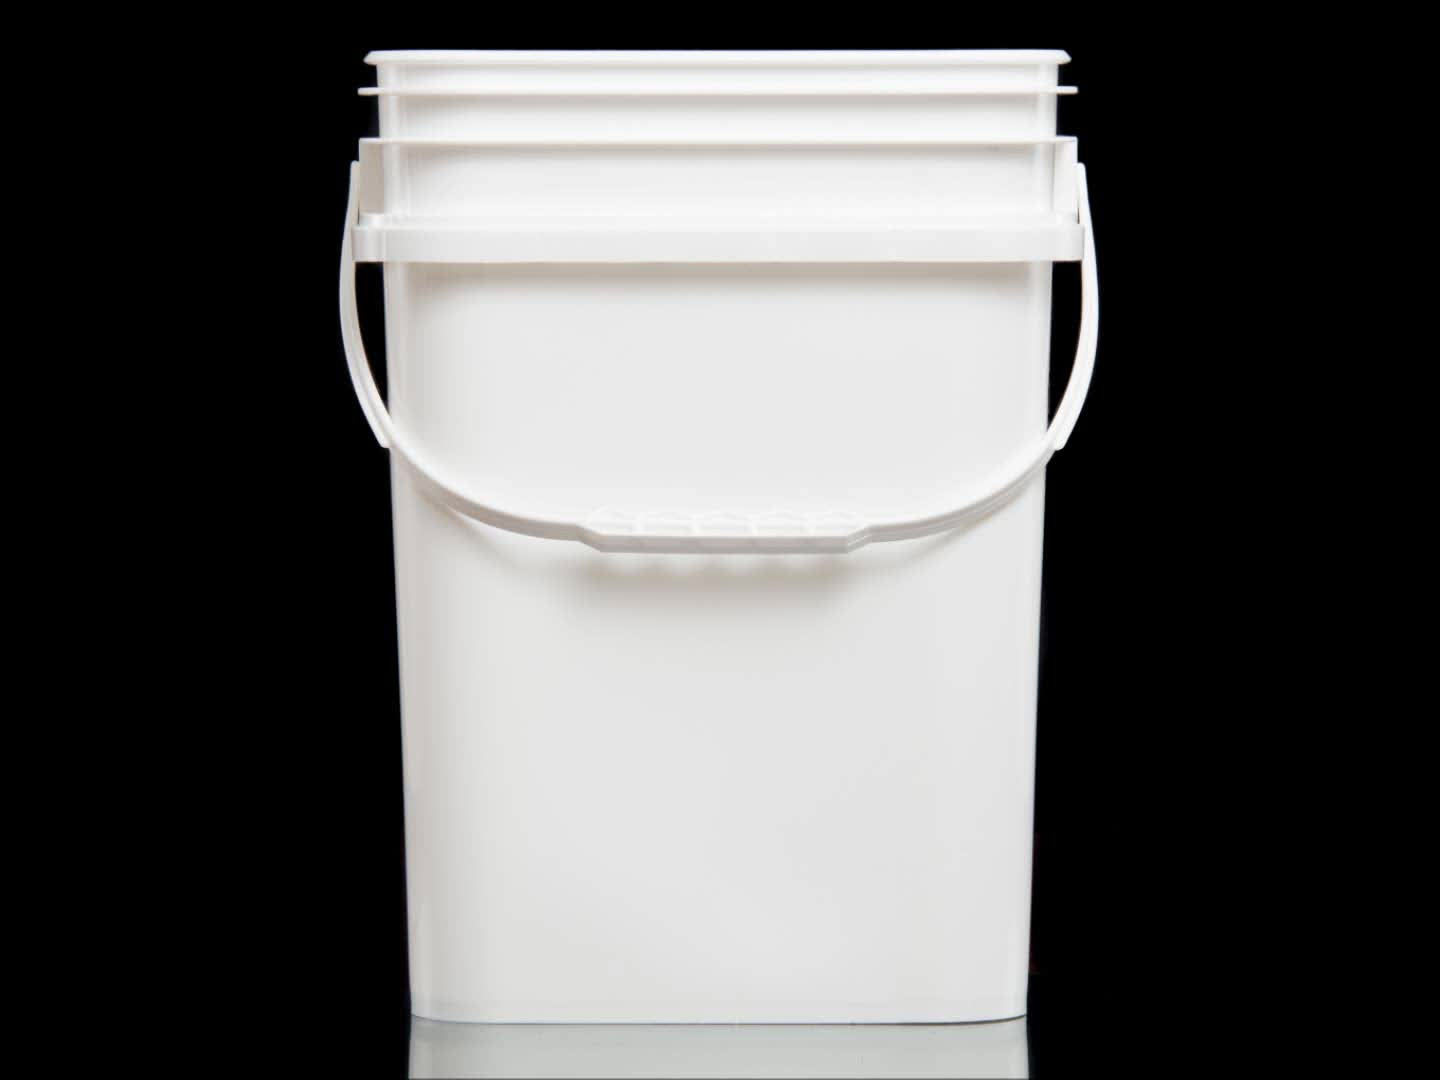 High Strength 15 Liter Square Pail For Pet Product